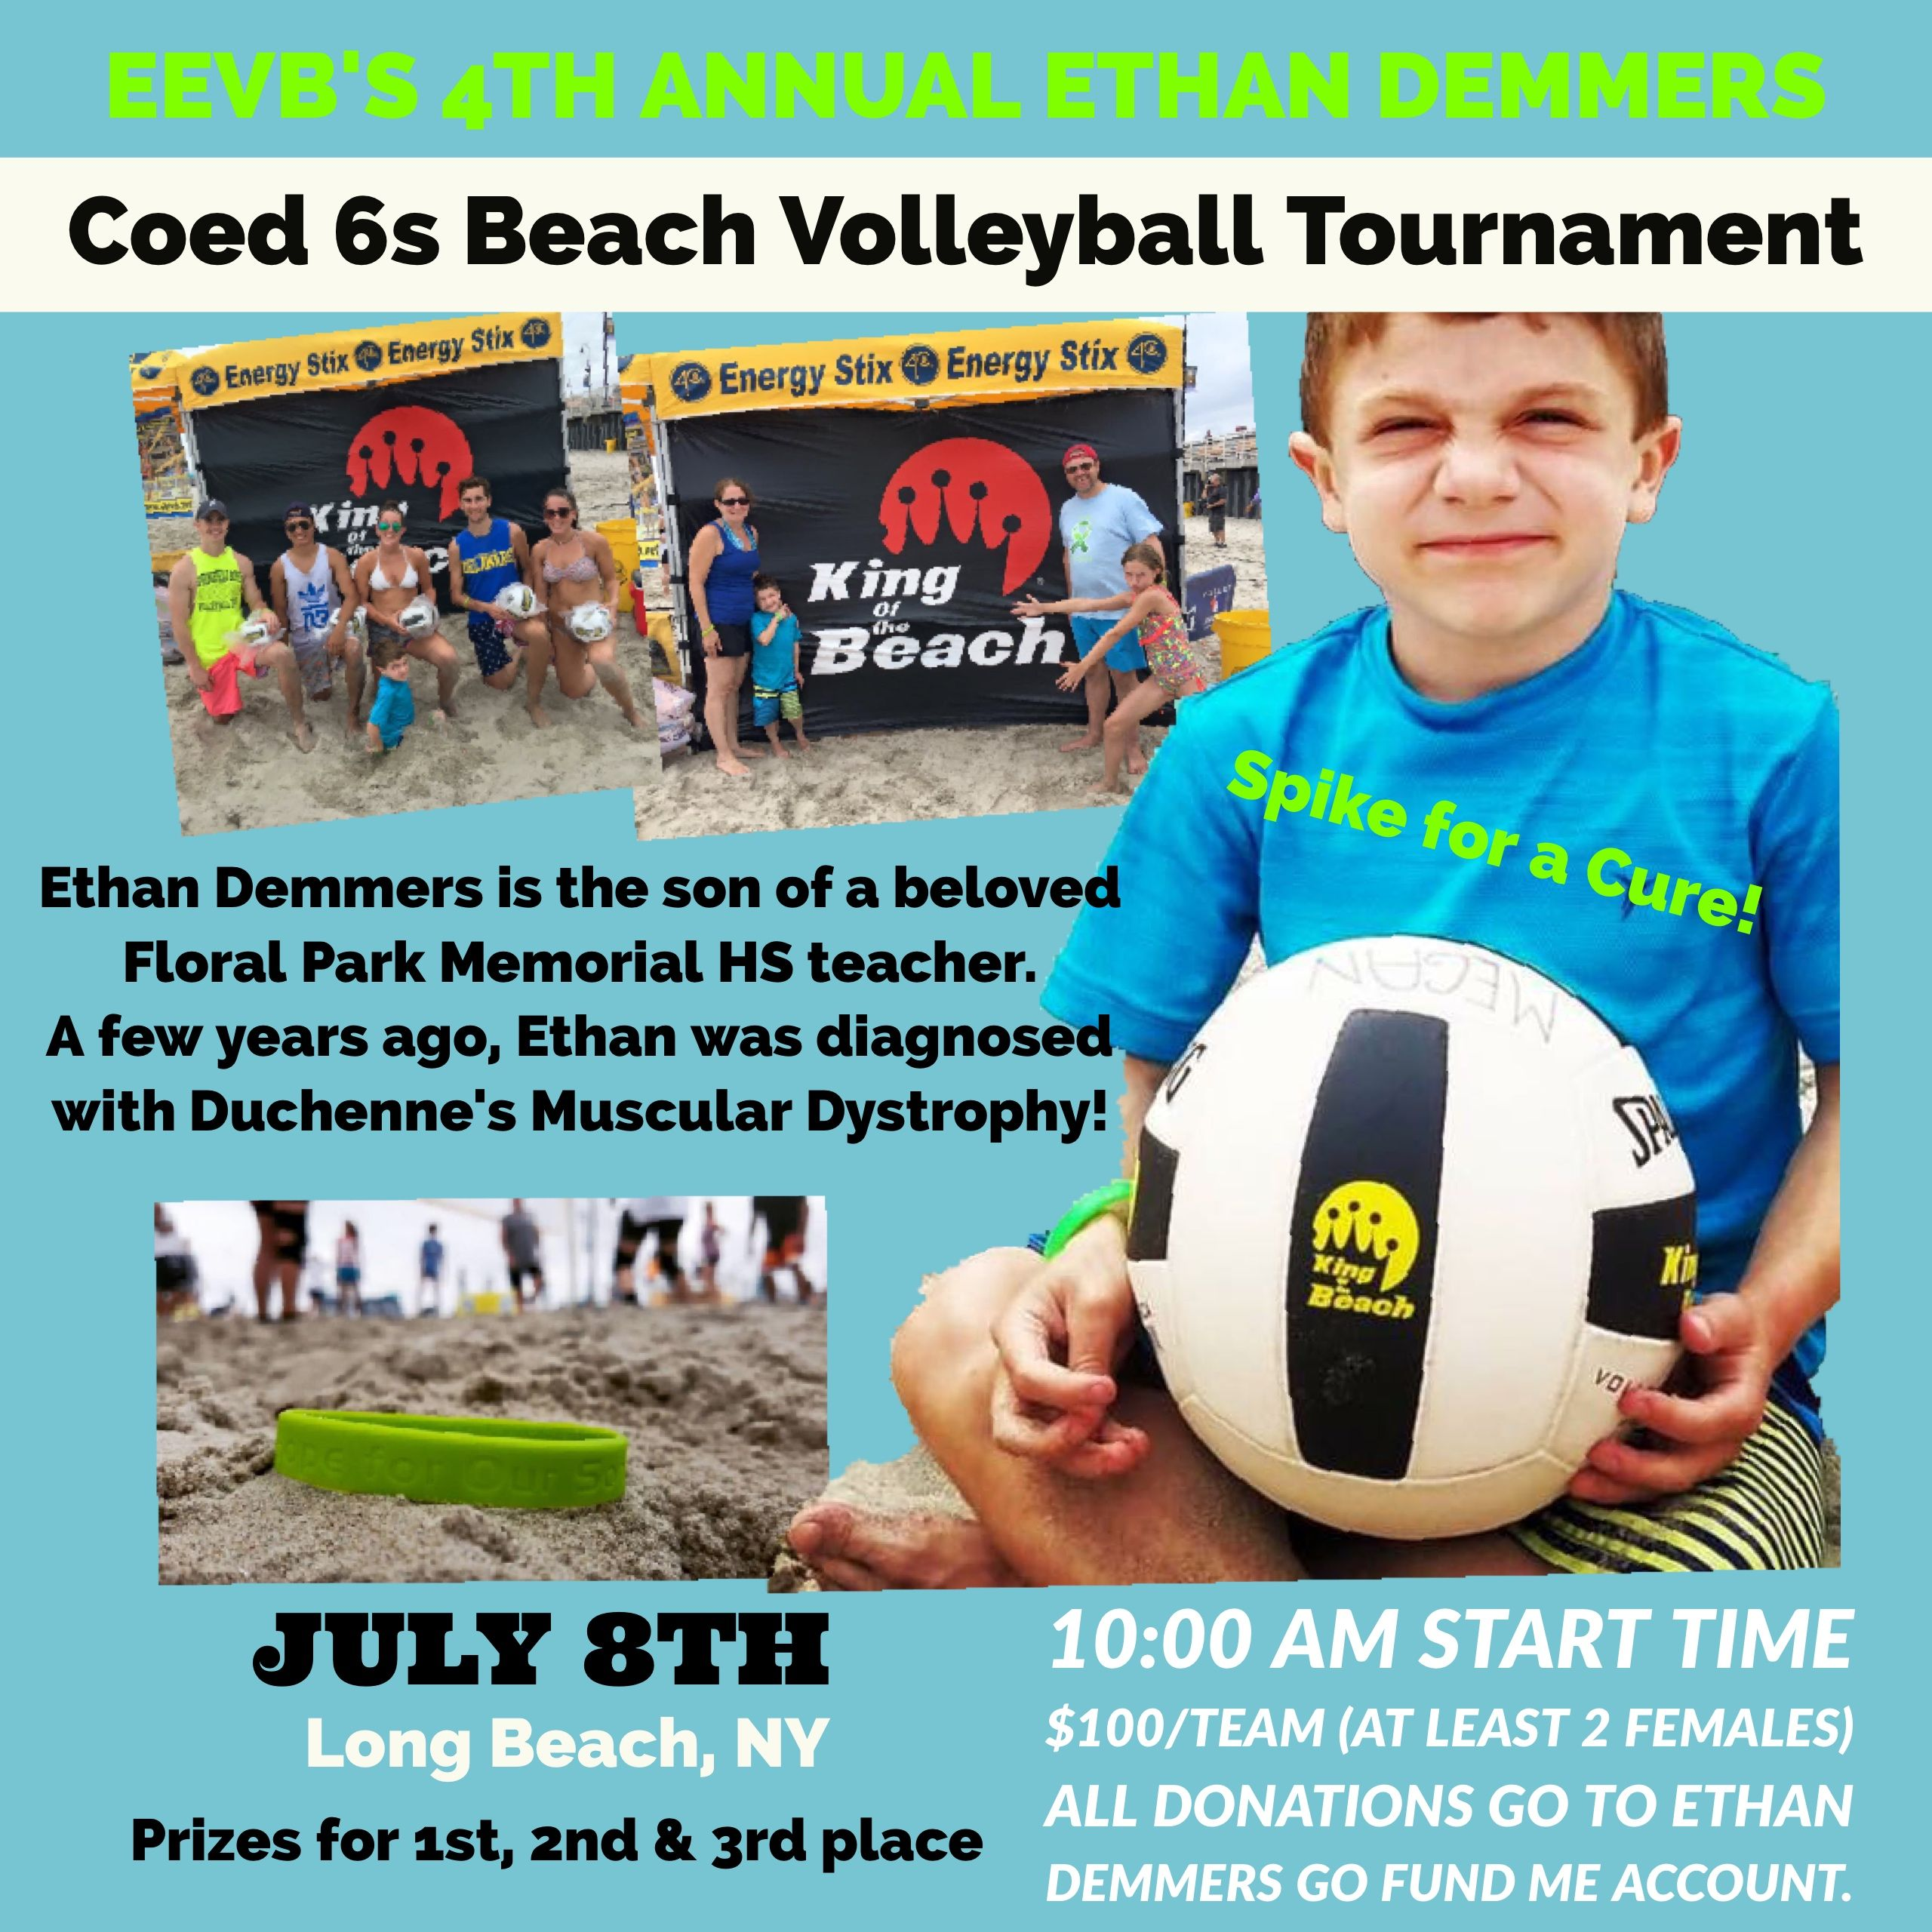 Pin By Kathleen Caulson On Volleyball Flyers Volleyball Tournaments Beach Volleyball Tournaments